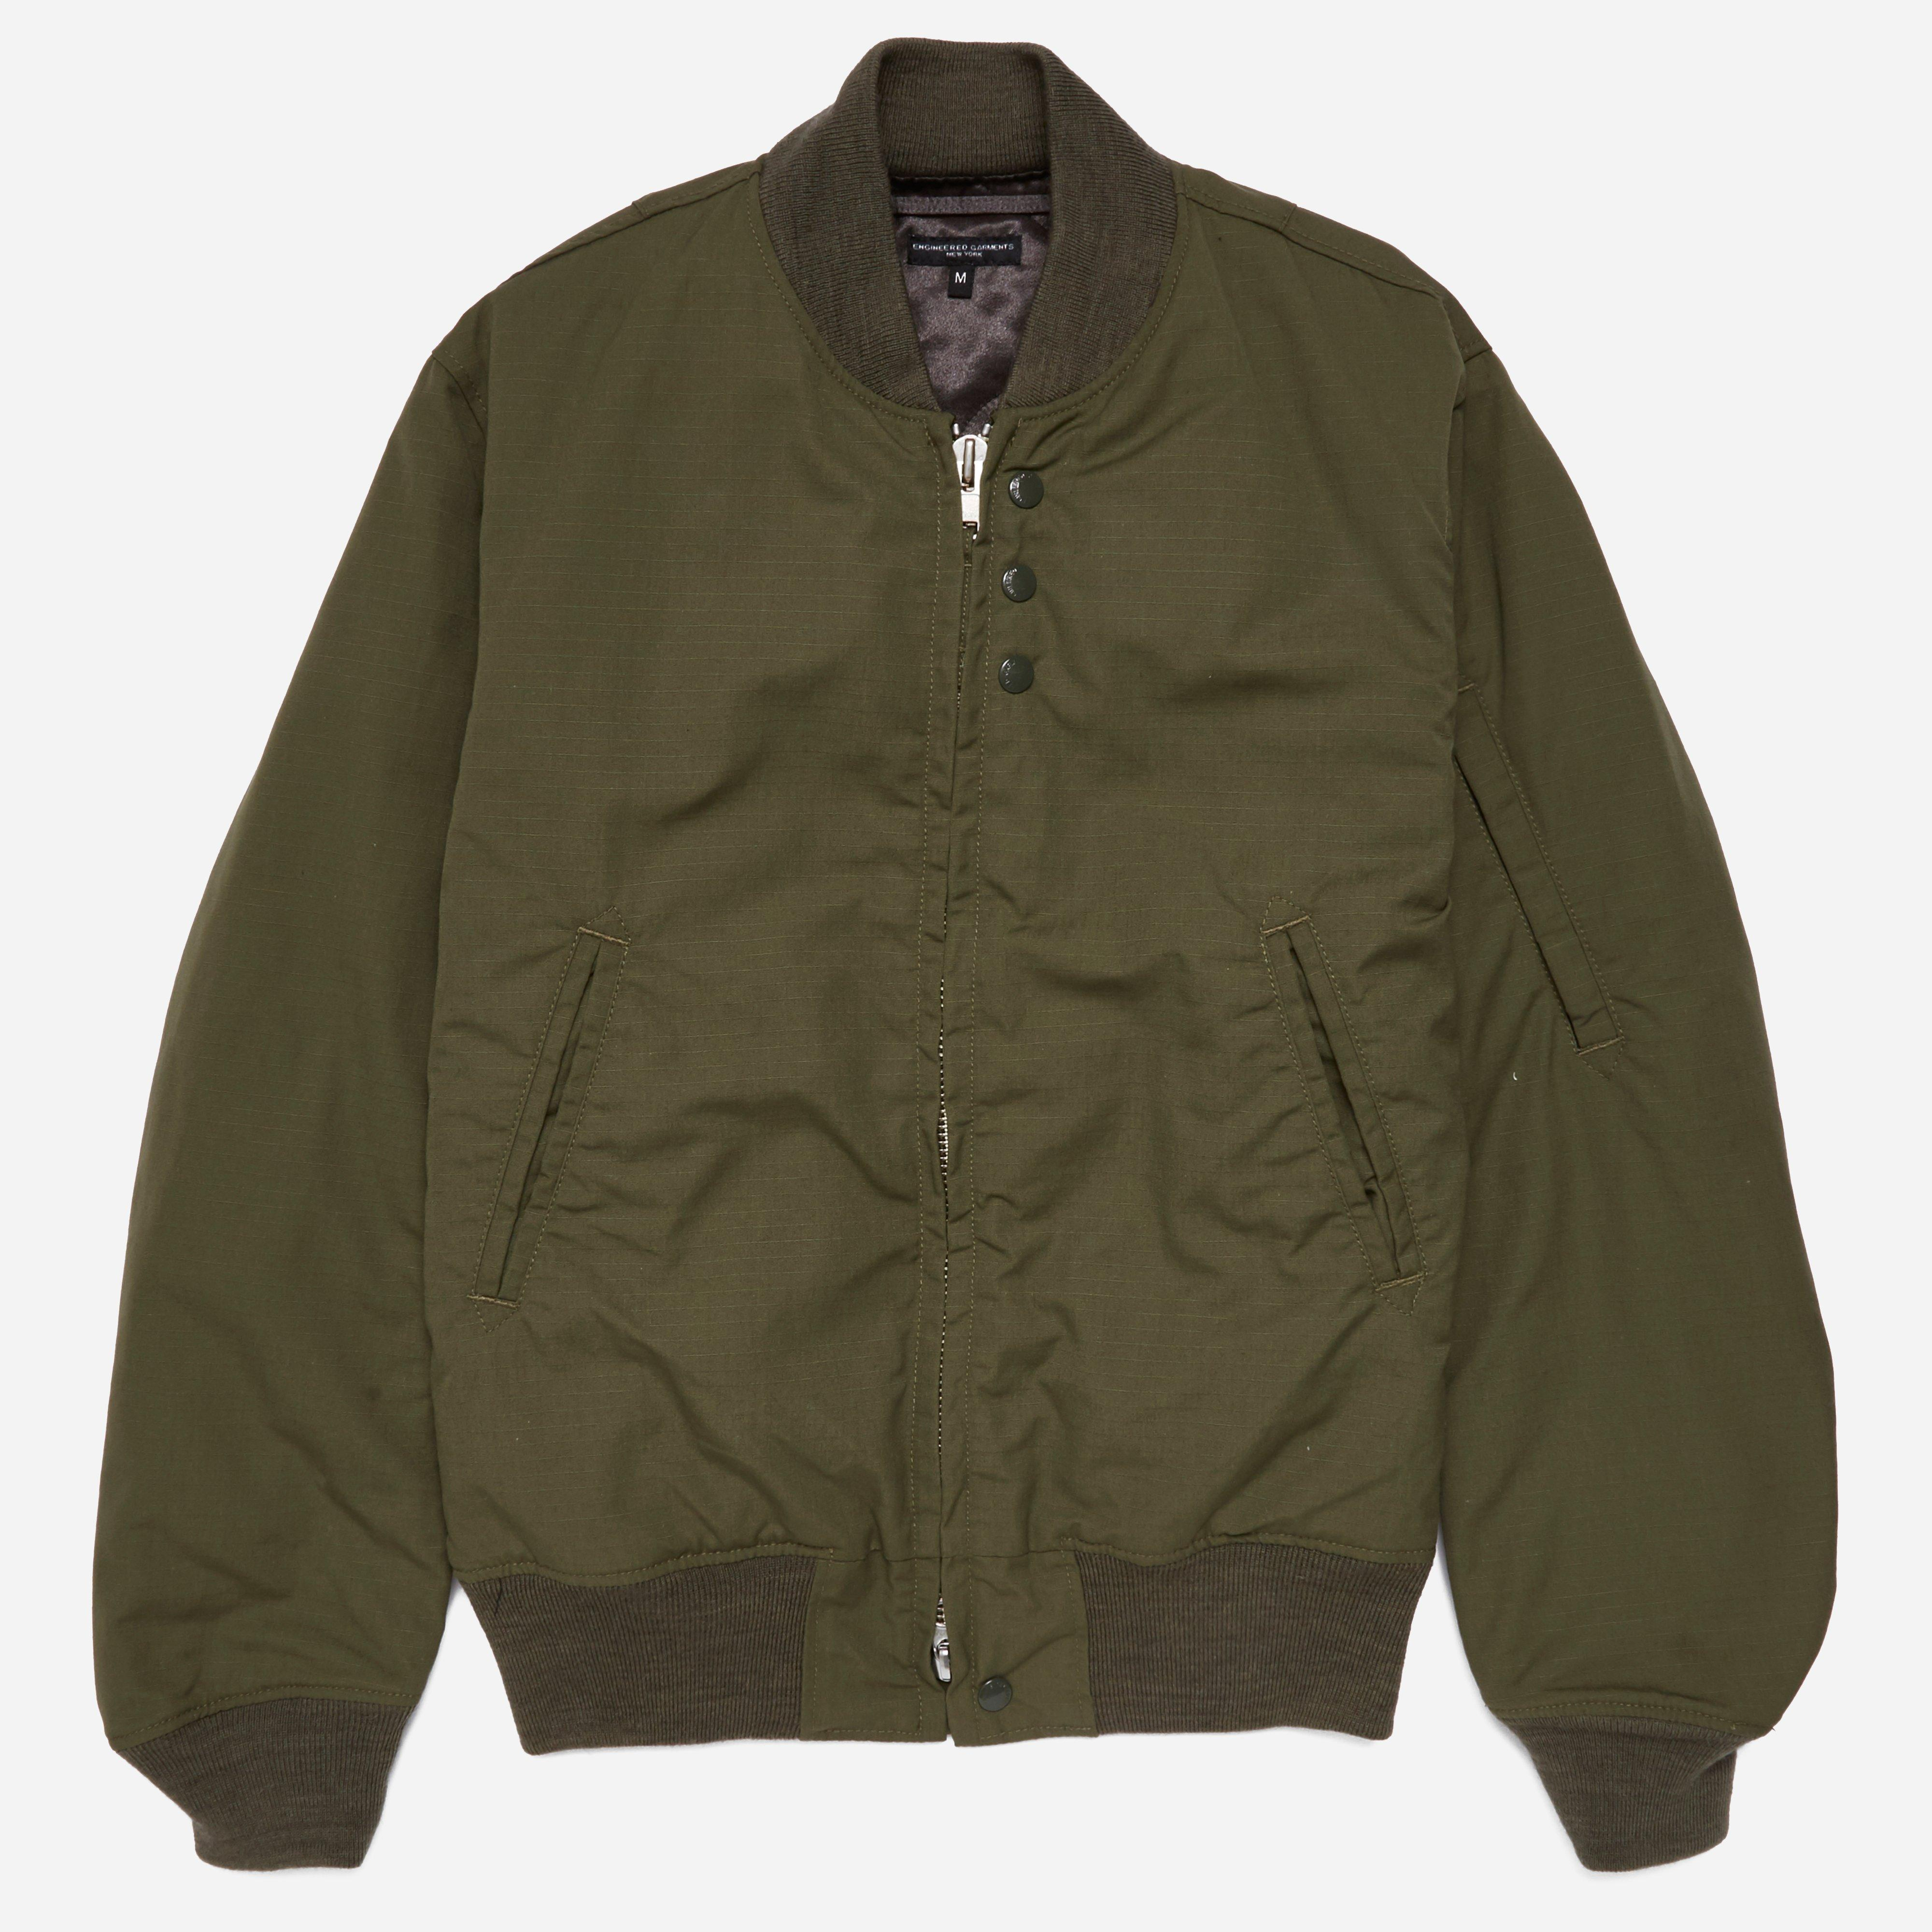 Engineered Garments Aviator Jacket - Nyco Ripstop